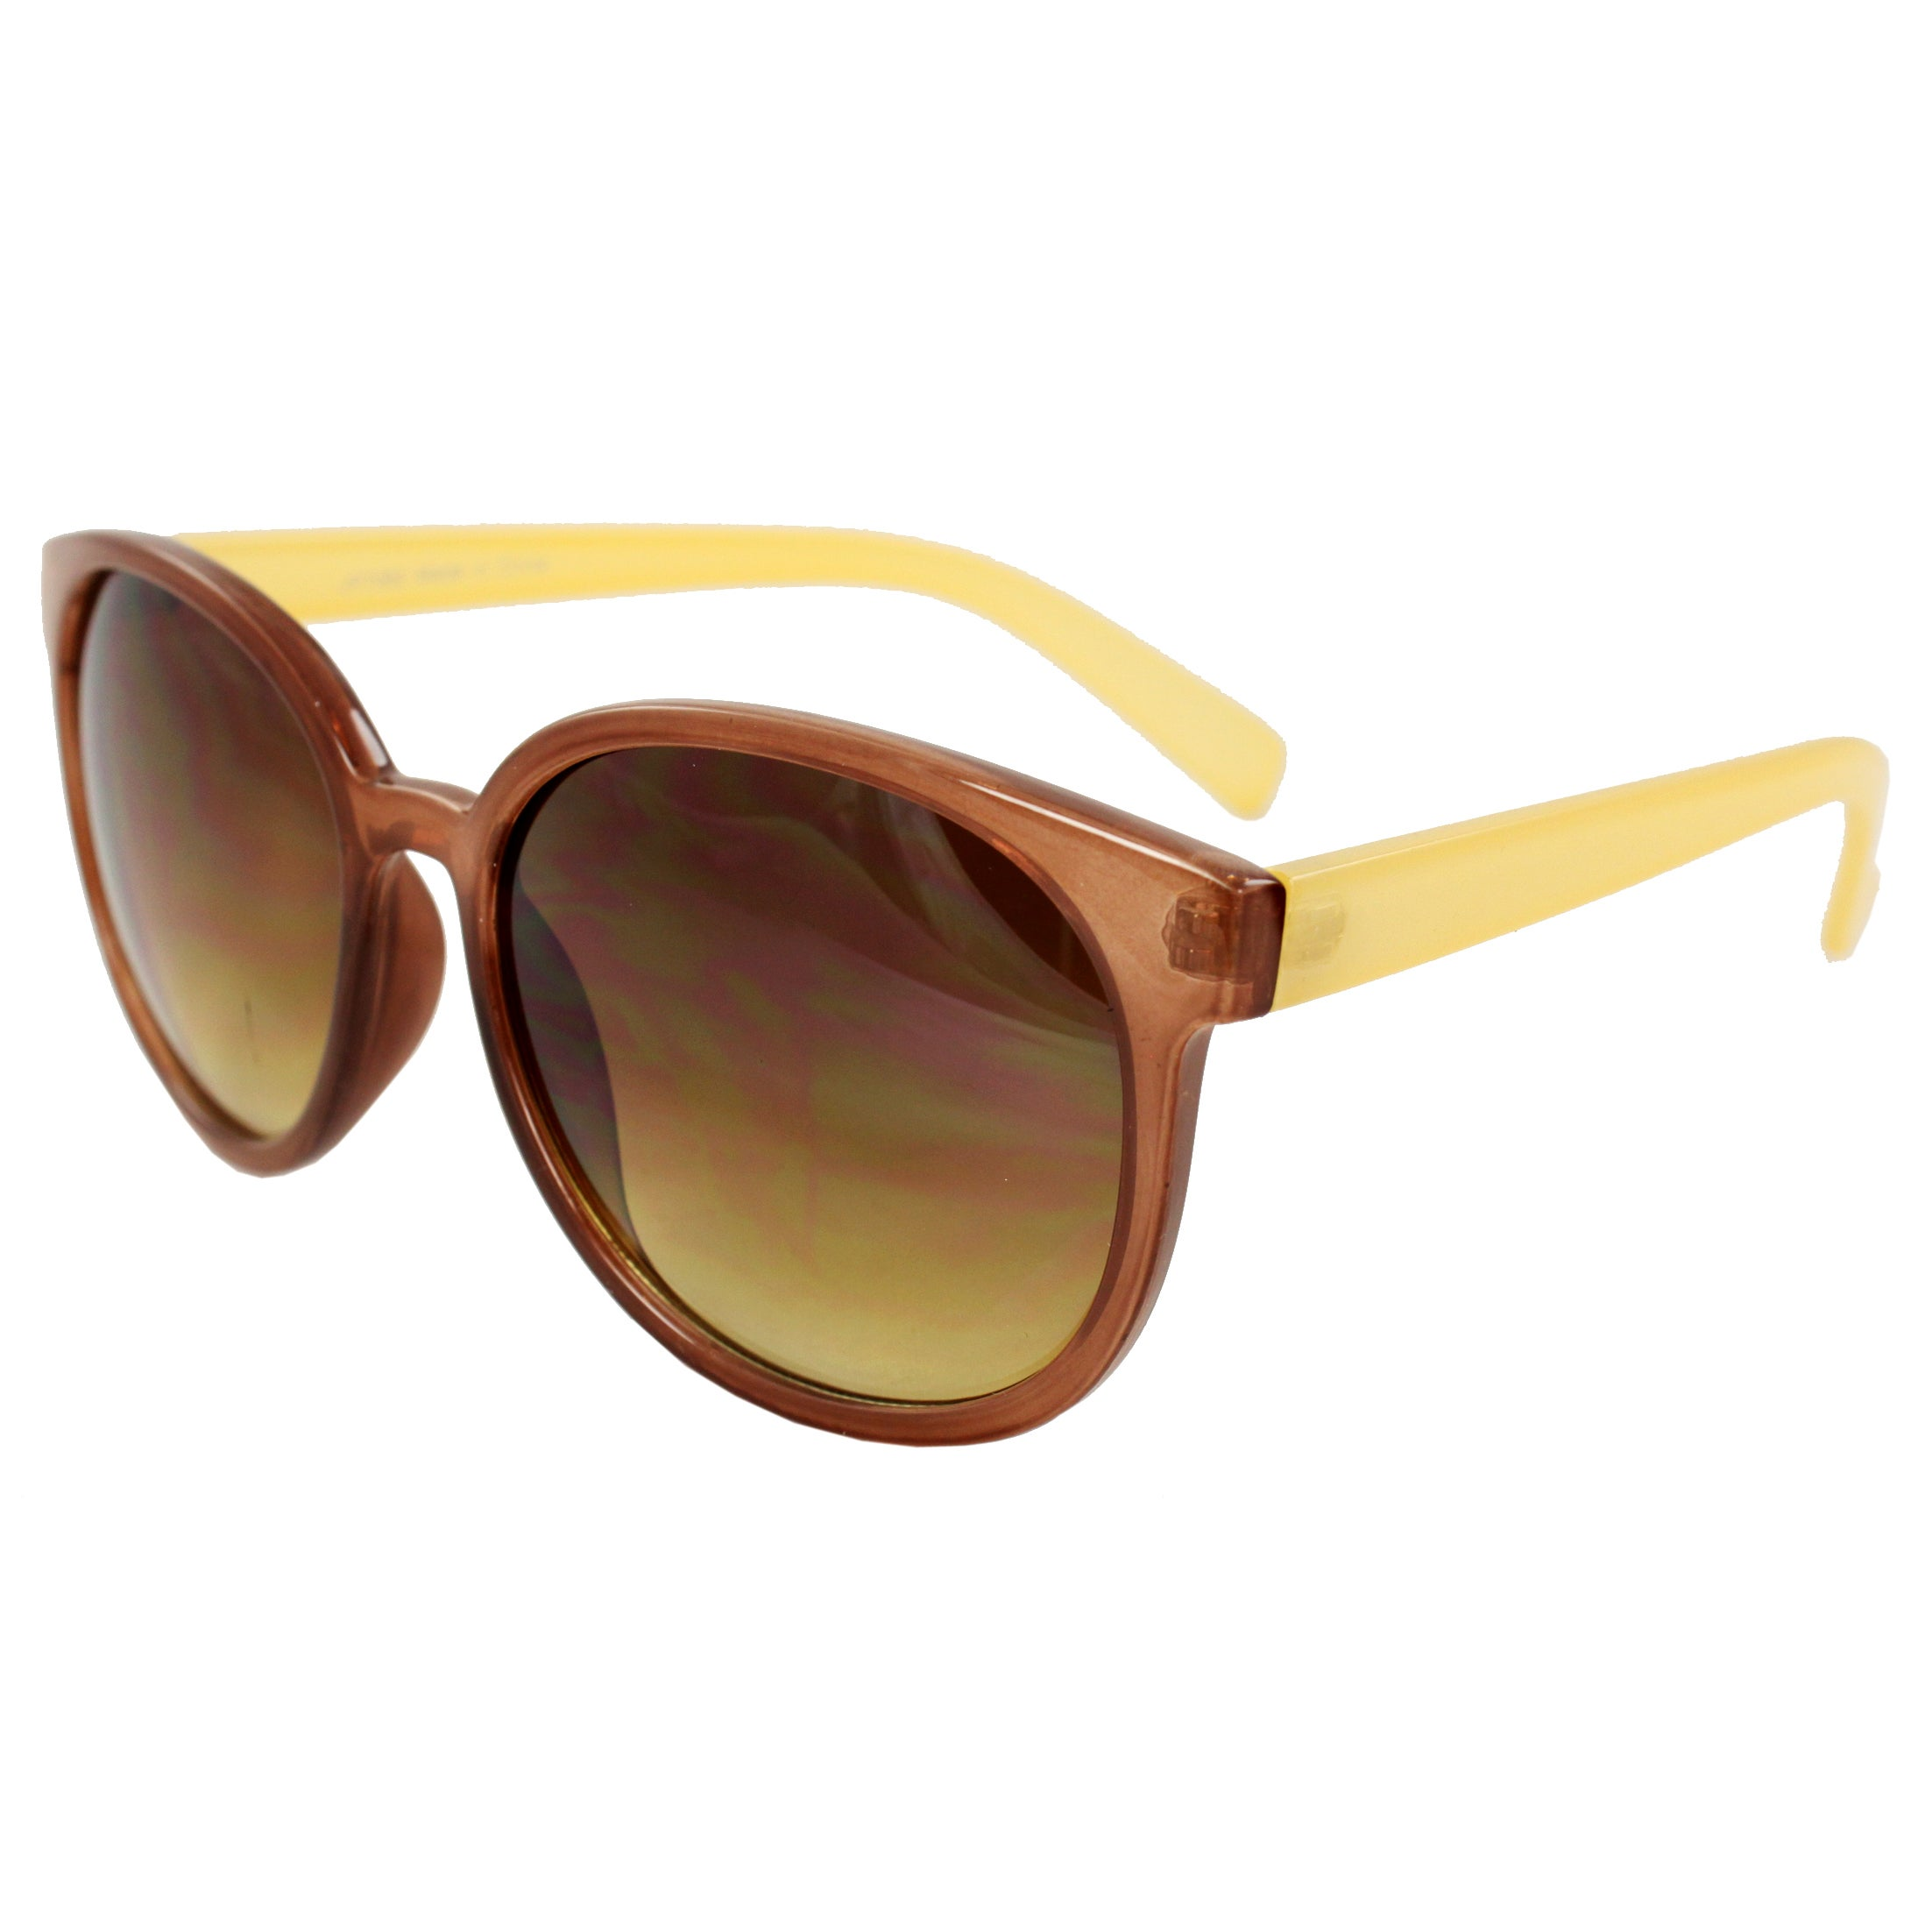 Unisex Two-Tone Oval Fashion Sunglasses